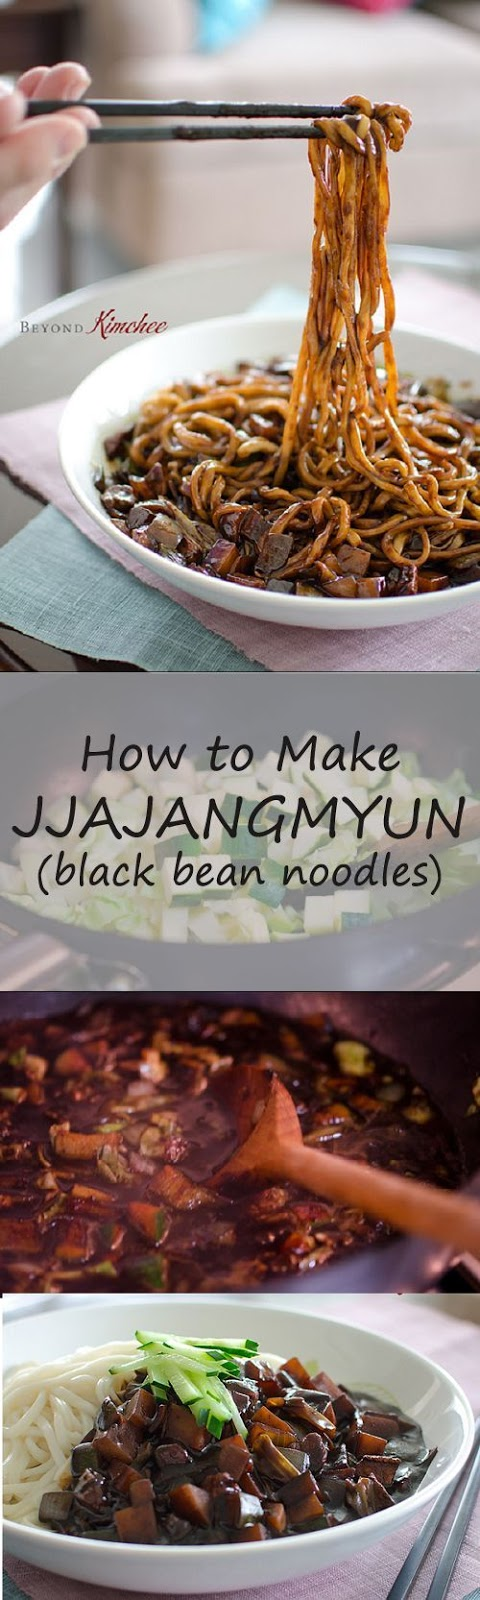 How to make Jjajangmyun, black bean noodles #Jjajangmyun #black_bean #noodles #DESSERTS #HEALTHYFOOD #EASY_RECIPES #DINNER #LAUCH #DELICIOUS #EASY #HOLIDAYS #RECIPE #SPECIAL_DIET #WORLD_CUISINE #CAKE #GRILL #APPETIZERS #HEALTHY_RECIPES #DRINKS #COOKING_METHOD #ITALIAN_RECIPES #MEAT #VEGAN_RECIPES #COOKIES #PASTA #FRUIT #SALAD #SOUP_APPETIZERS #NON_ALCOHOLIC_DRINKS #MEAL_PLANNING #VEGETABLES #SOUP #PASTRY #CHOCOLATE #DAIRY #ALCOHOLIC_DRINKS #BULGUR_SALAD #BAKING #SNACKS #BEEF_RECIPES #MEAT_APPETIZERS #MEXICAN_RECIPES #BREAD #ASIAN_RECIPES #SEAFOOD_APPETIZERS #MUFFINS #BREAKFAST_AND_BRUNCH #CONDIMENTS #CUPCAKES #CHEESE #CHICKEN_RECIPES #PIE #COFFEE #NO_BAKE_DESSERTS #HEALTHY_SNACKS #SEAFOOD #GRAIN #LUNCHES_DINNERS #MEXICAN #QUICK_BREAD #LIQUOR